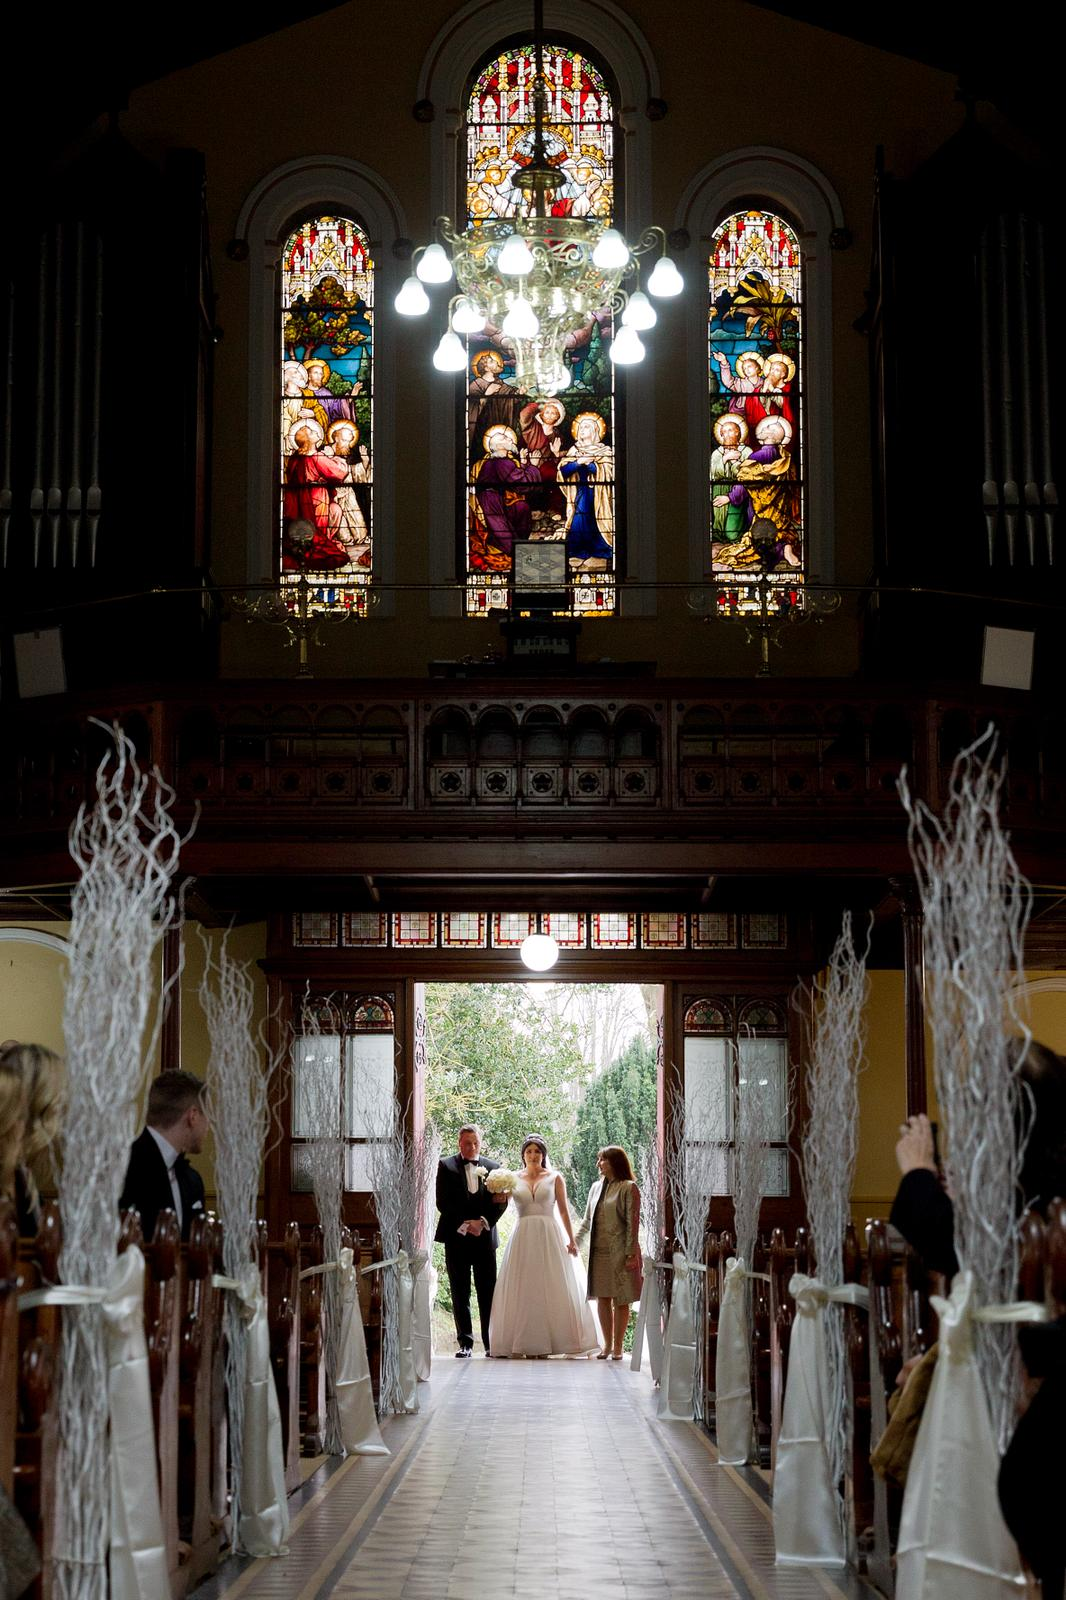 Winter church wedding decor